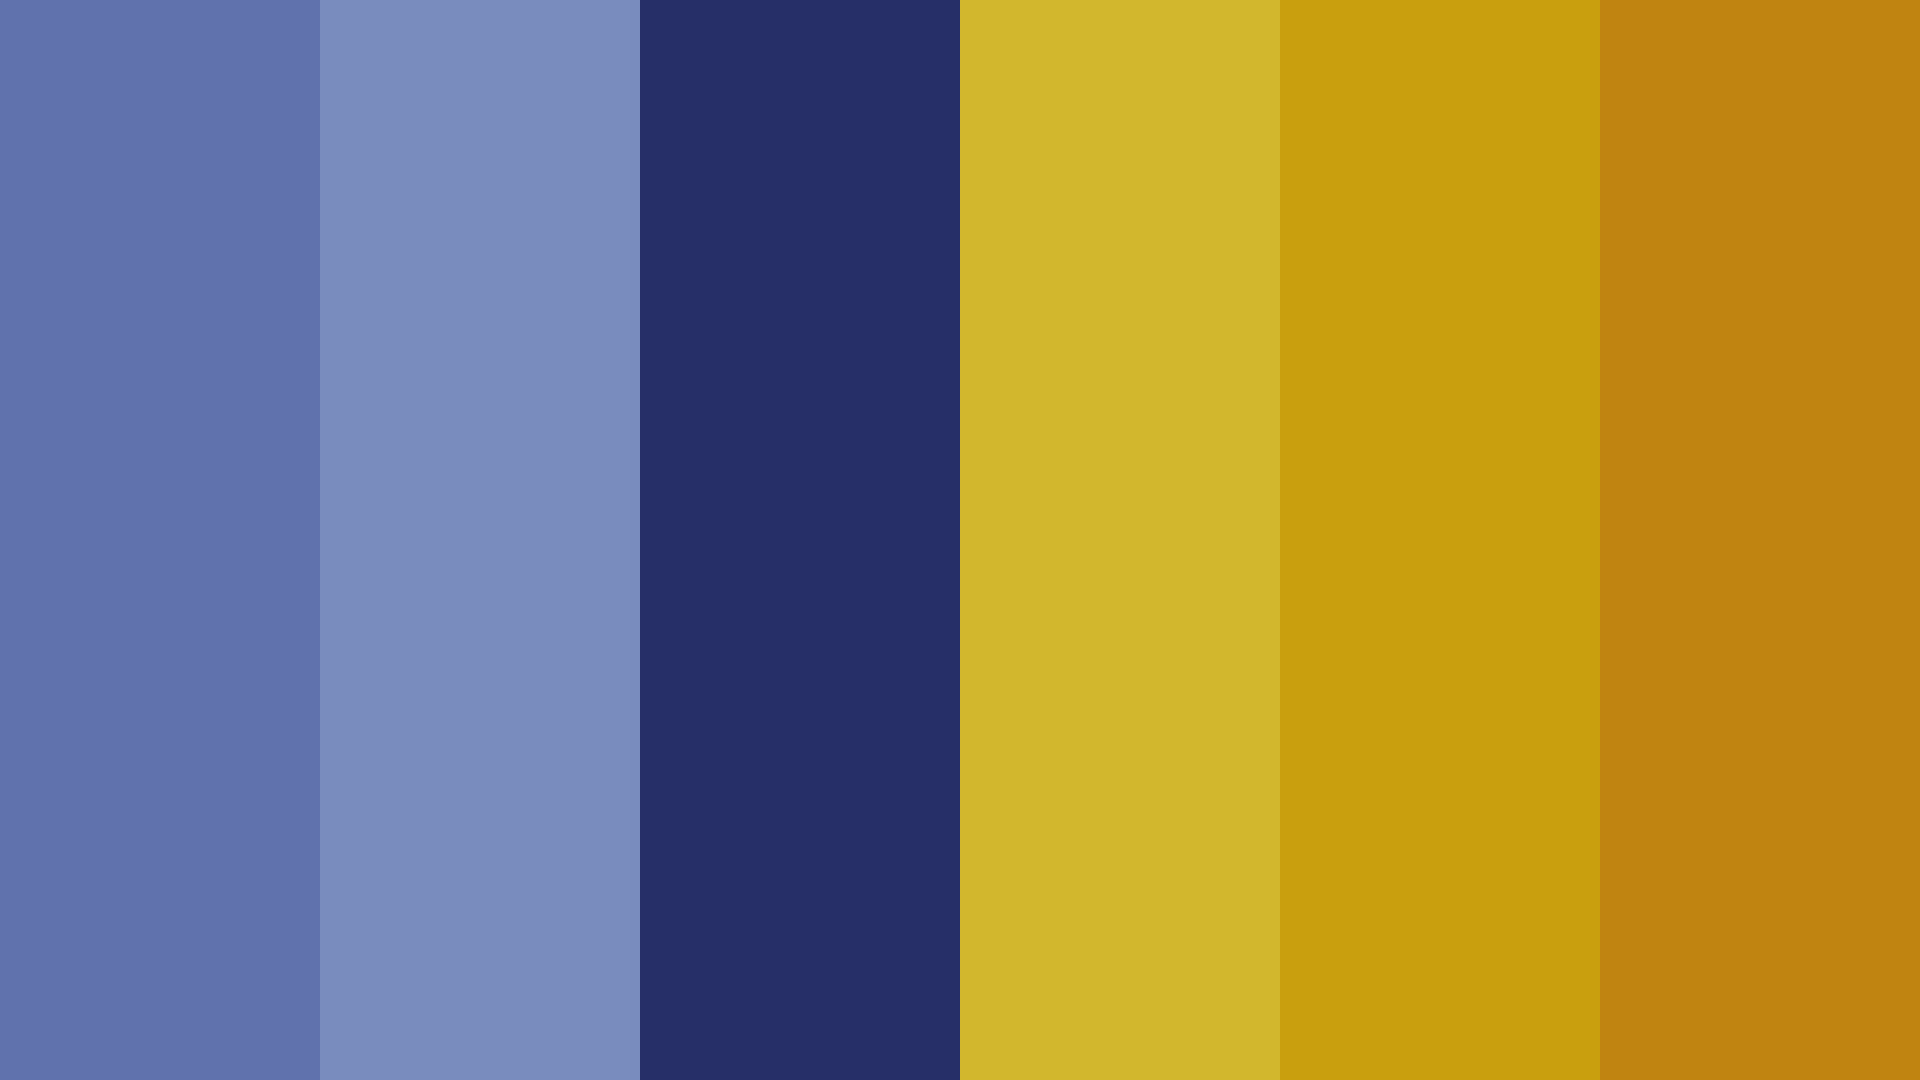 Blue And Dull Gold Color Palette